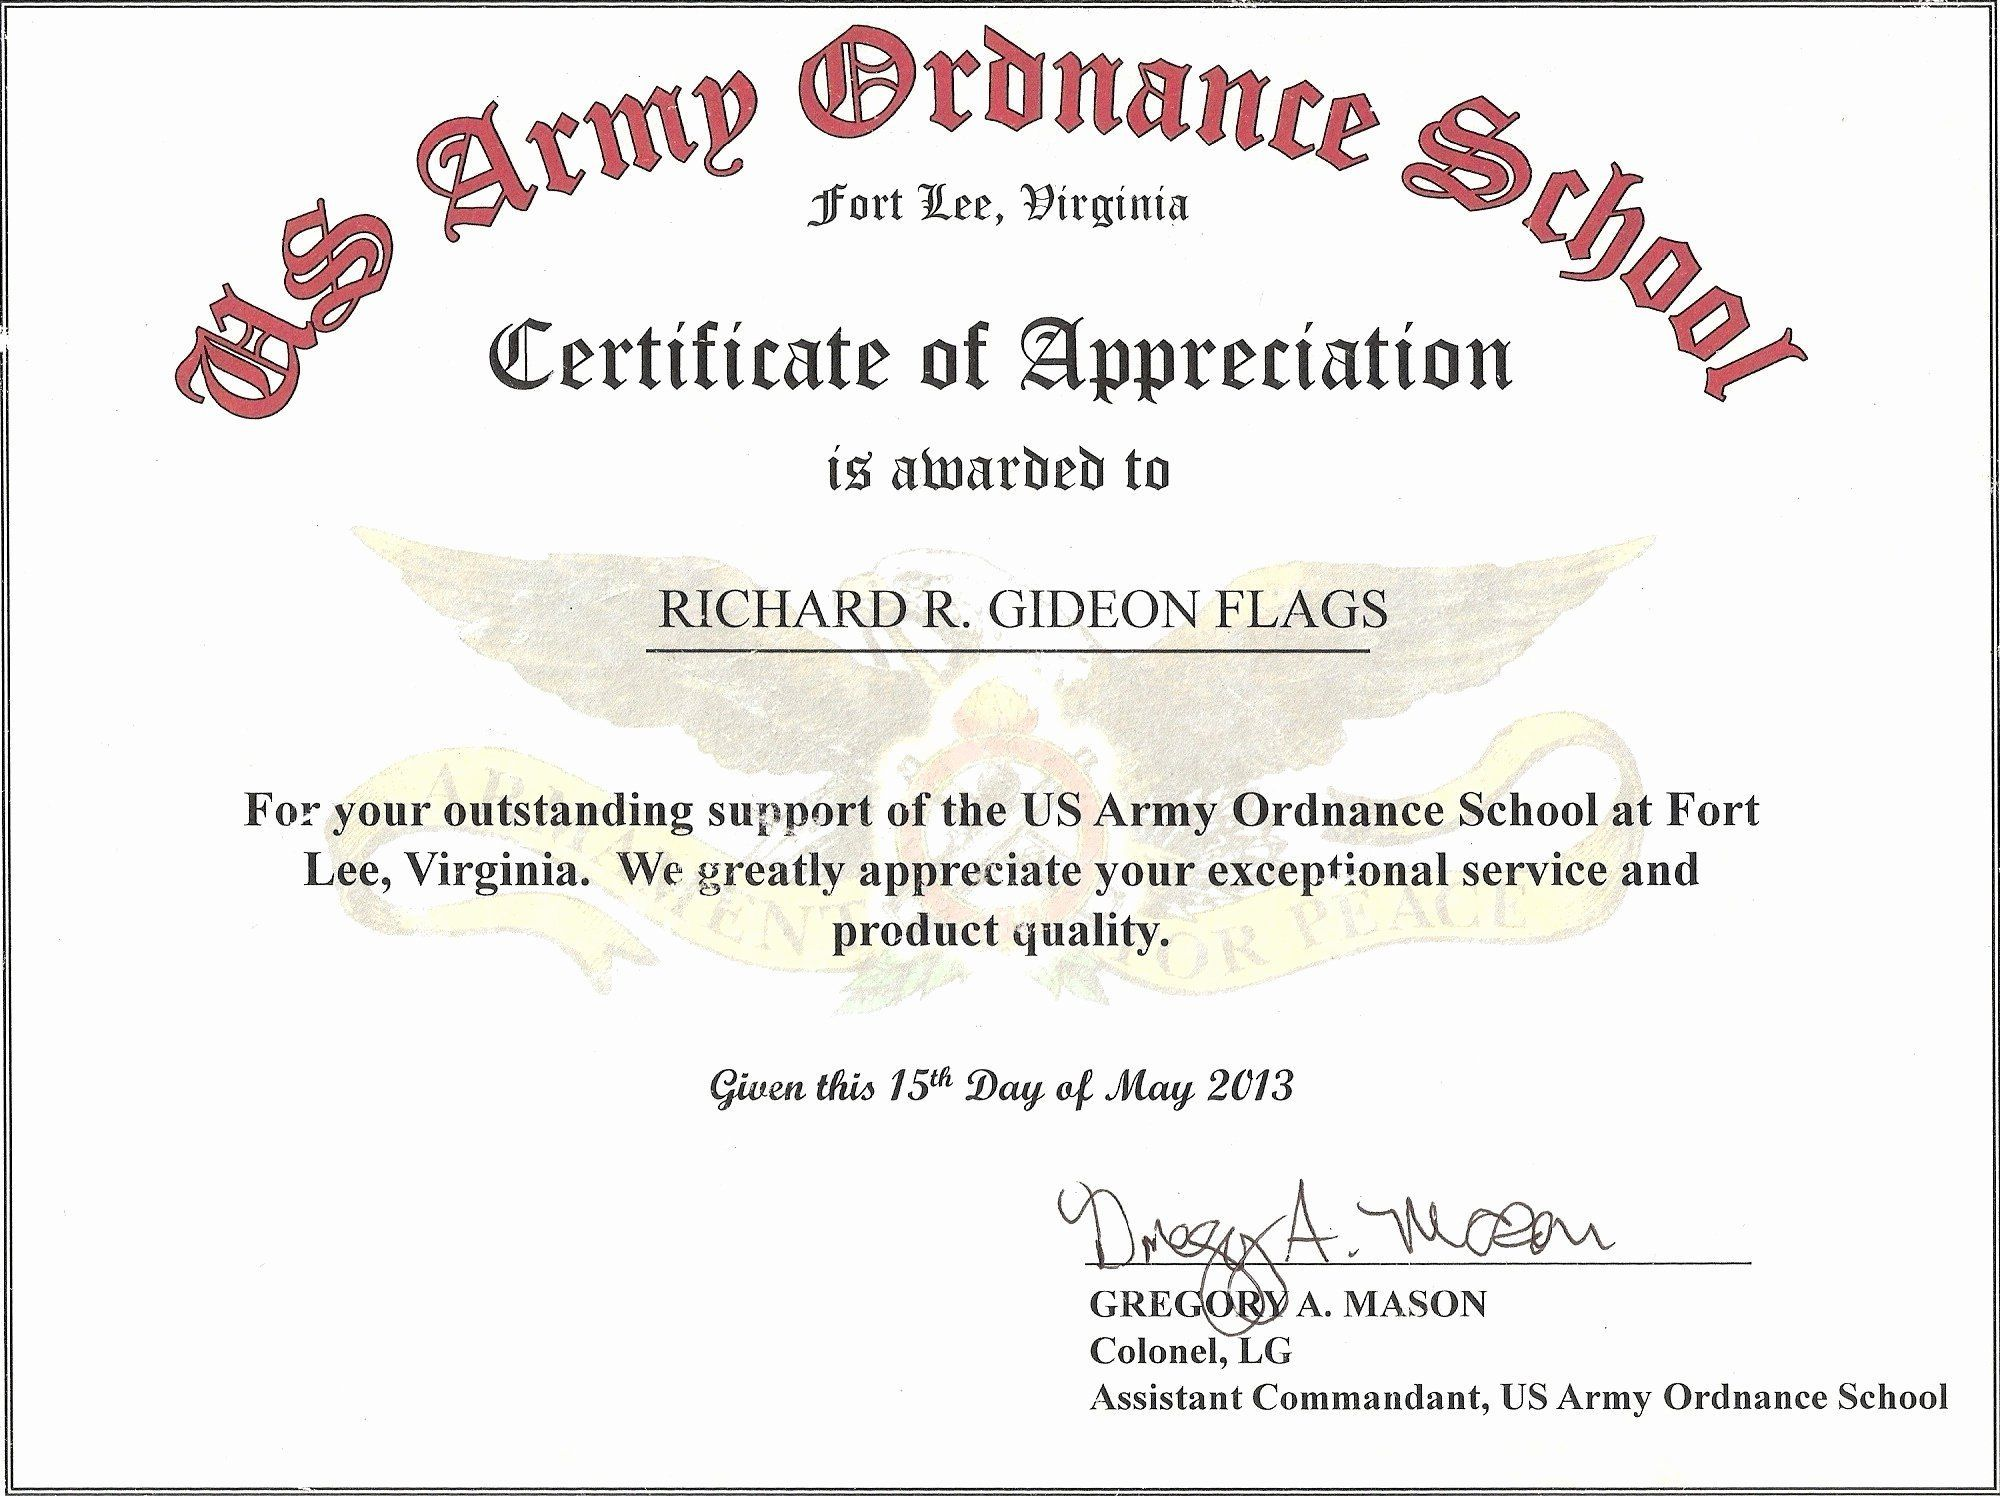 Army Certificate Of Achievement Template In 2021 Certificate Of Achievement Template Certificate Of Appreciation Certificate Of Completion Template Army certificate of appreciation template ppt